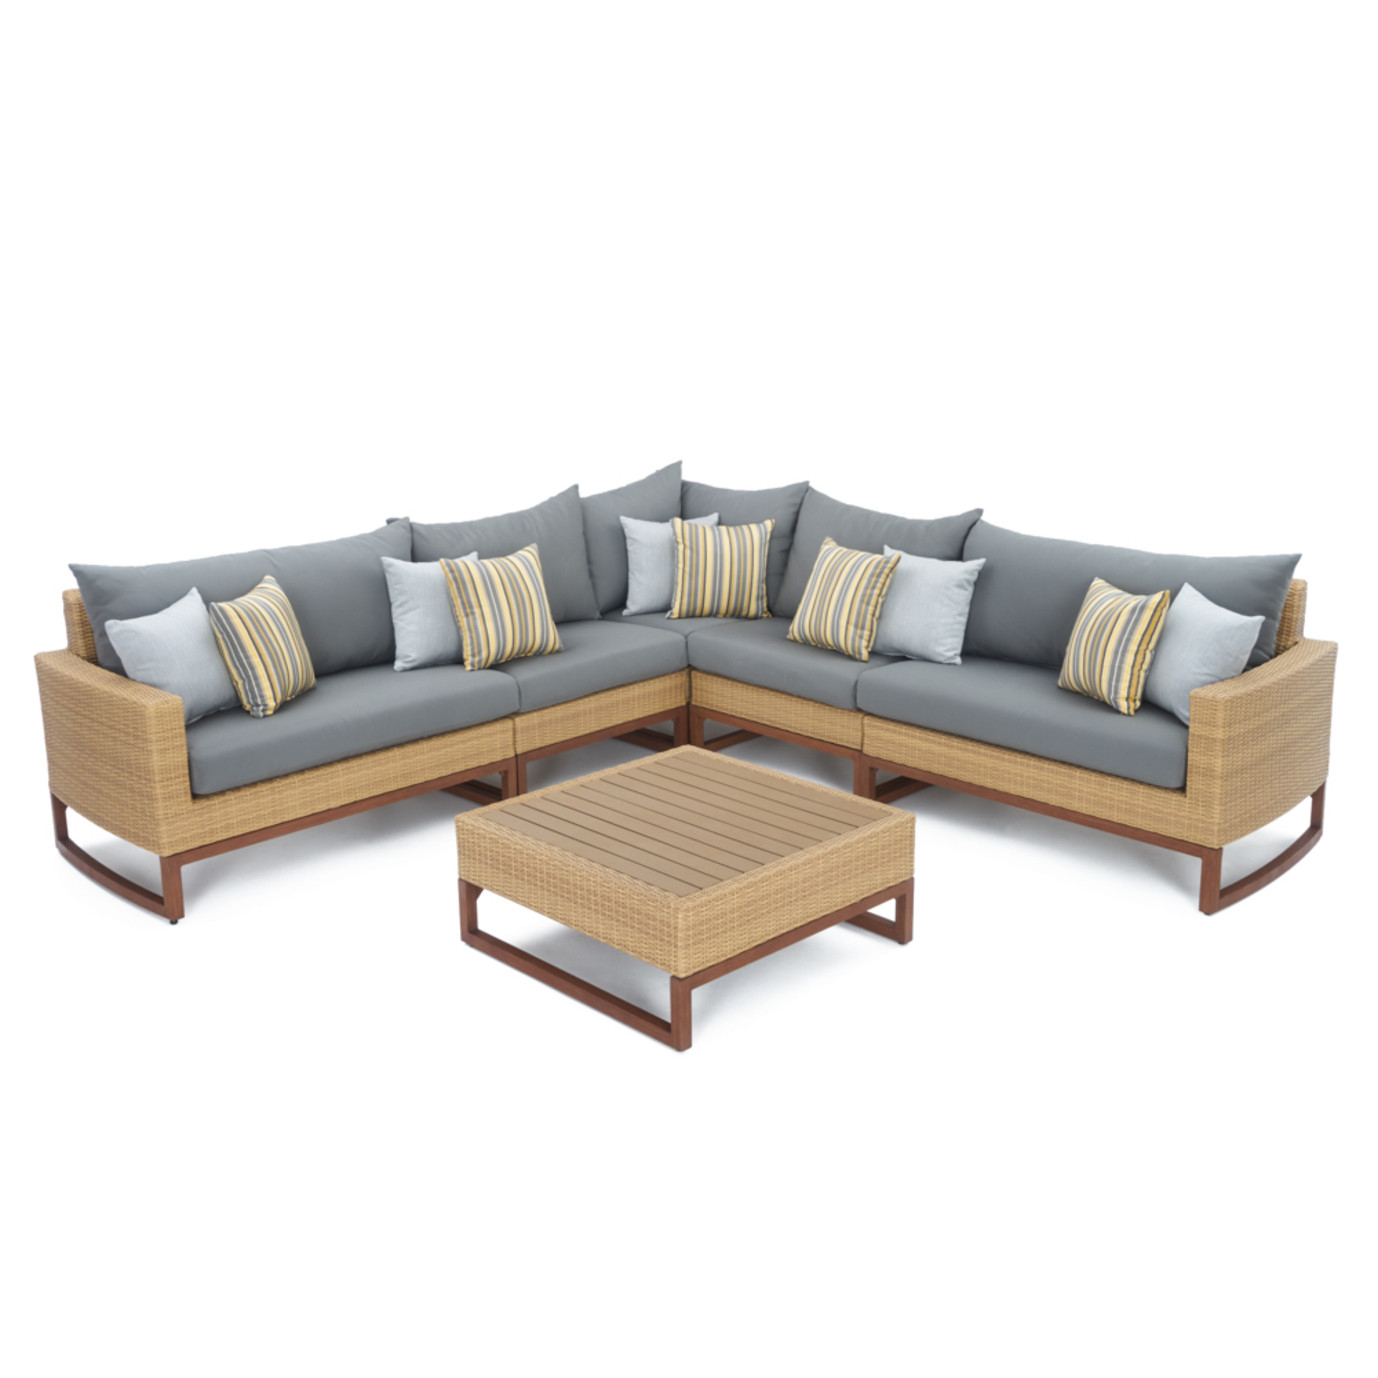 Mili™ 6 Piece Sofa Sectional - Charcoal Gray